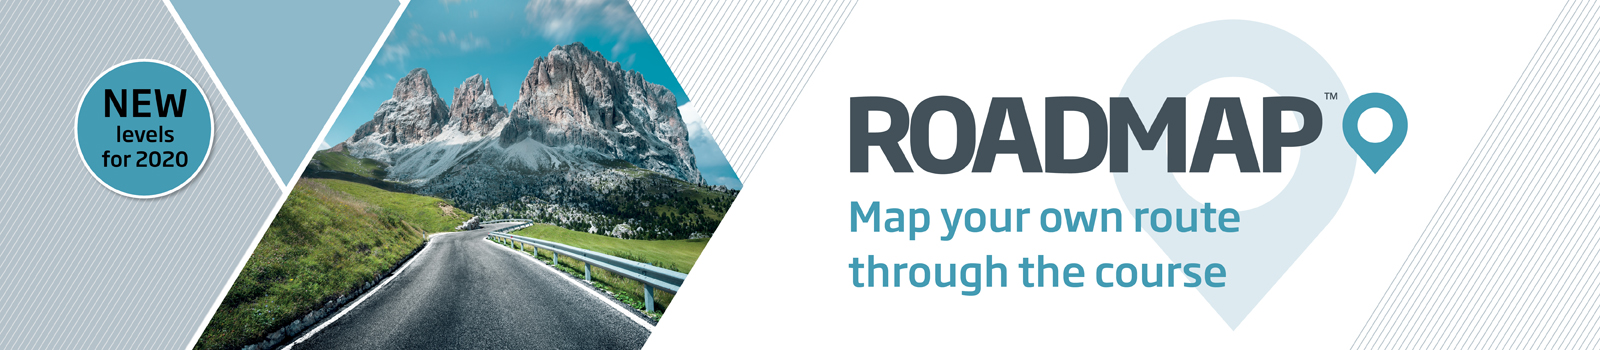 Roadmap: Map your own route